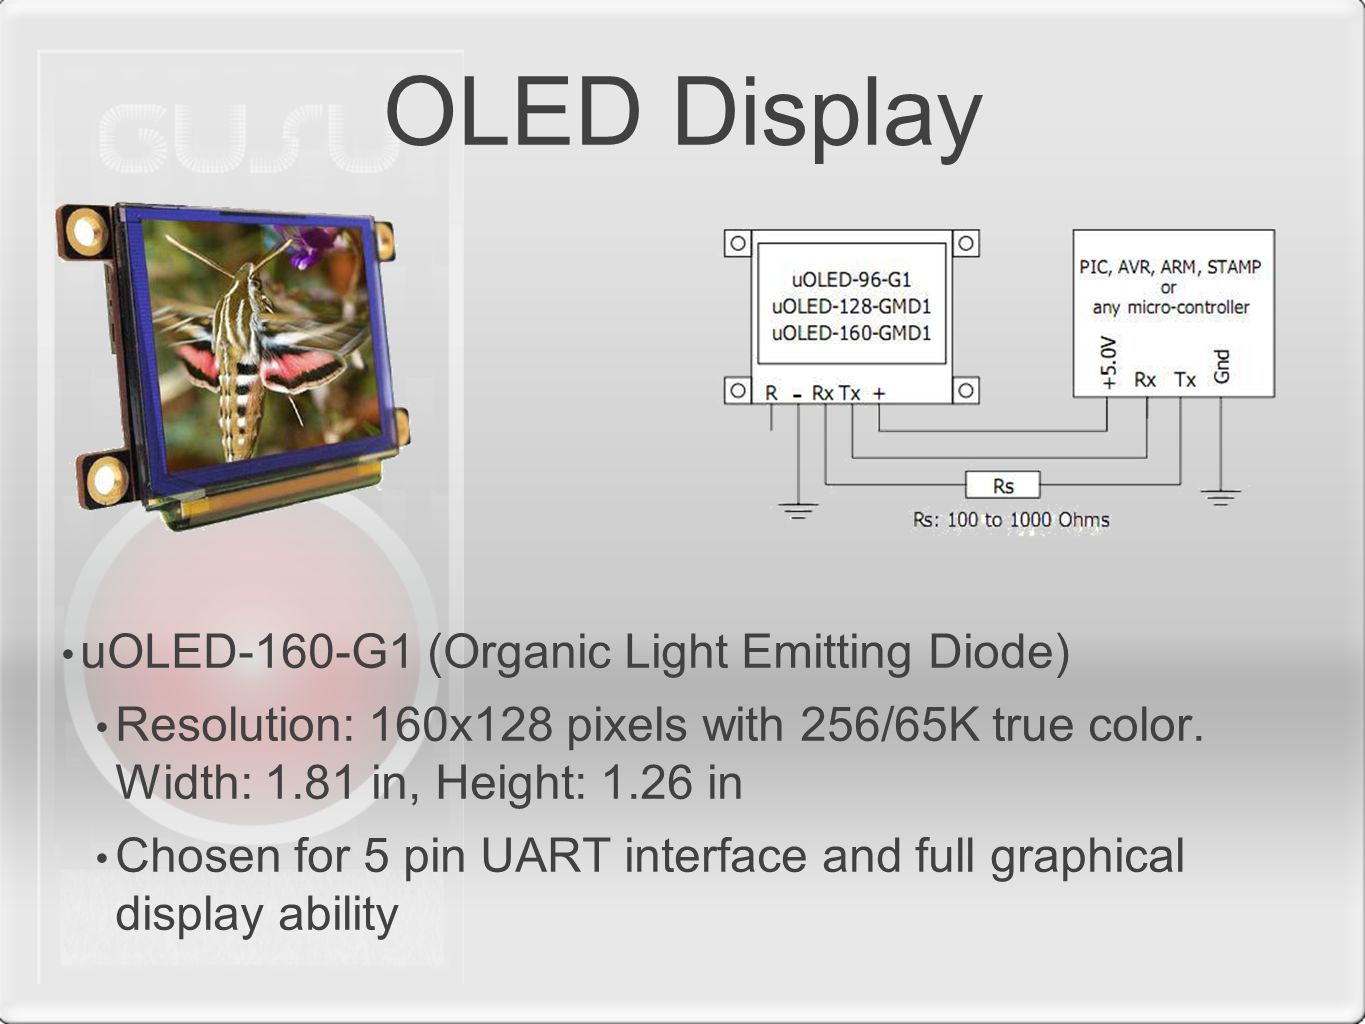 OLED Display uOLED-160-G1 (Organic Light Emitting Diode) Resolution: 160x128 pixels with 256/65K true color.